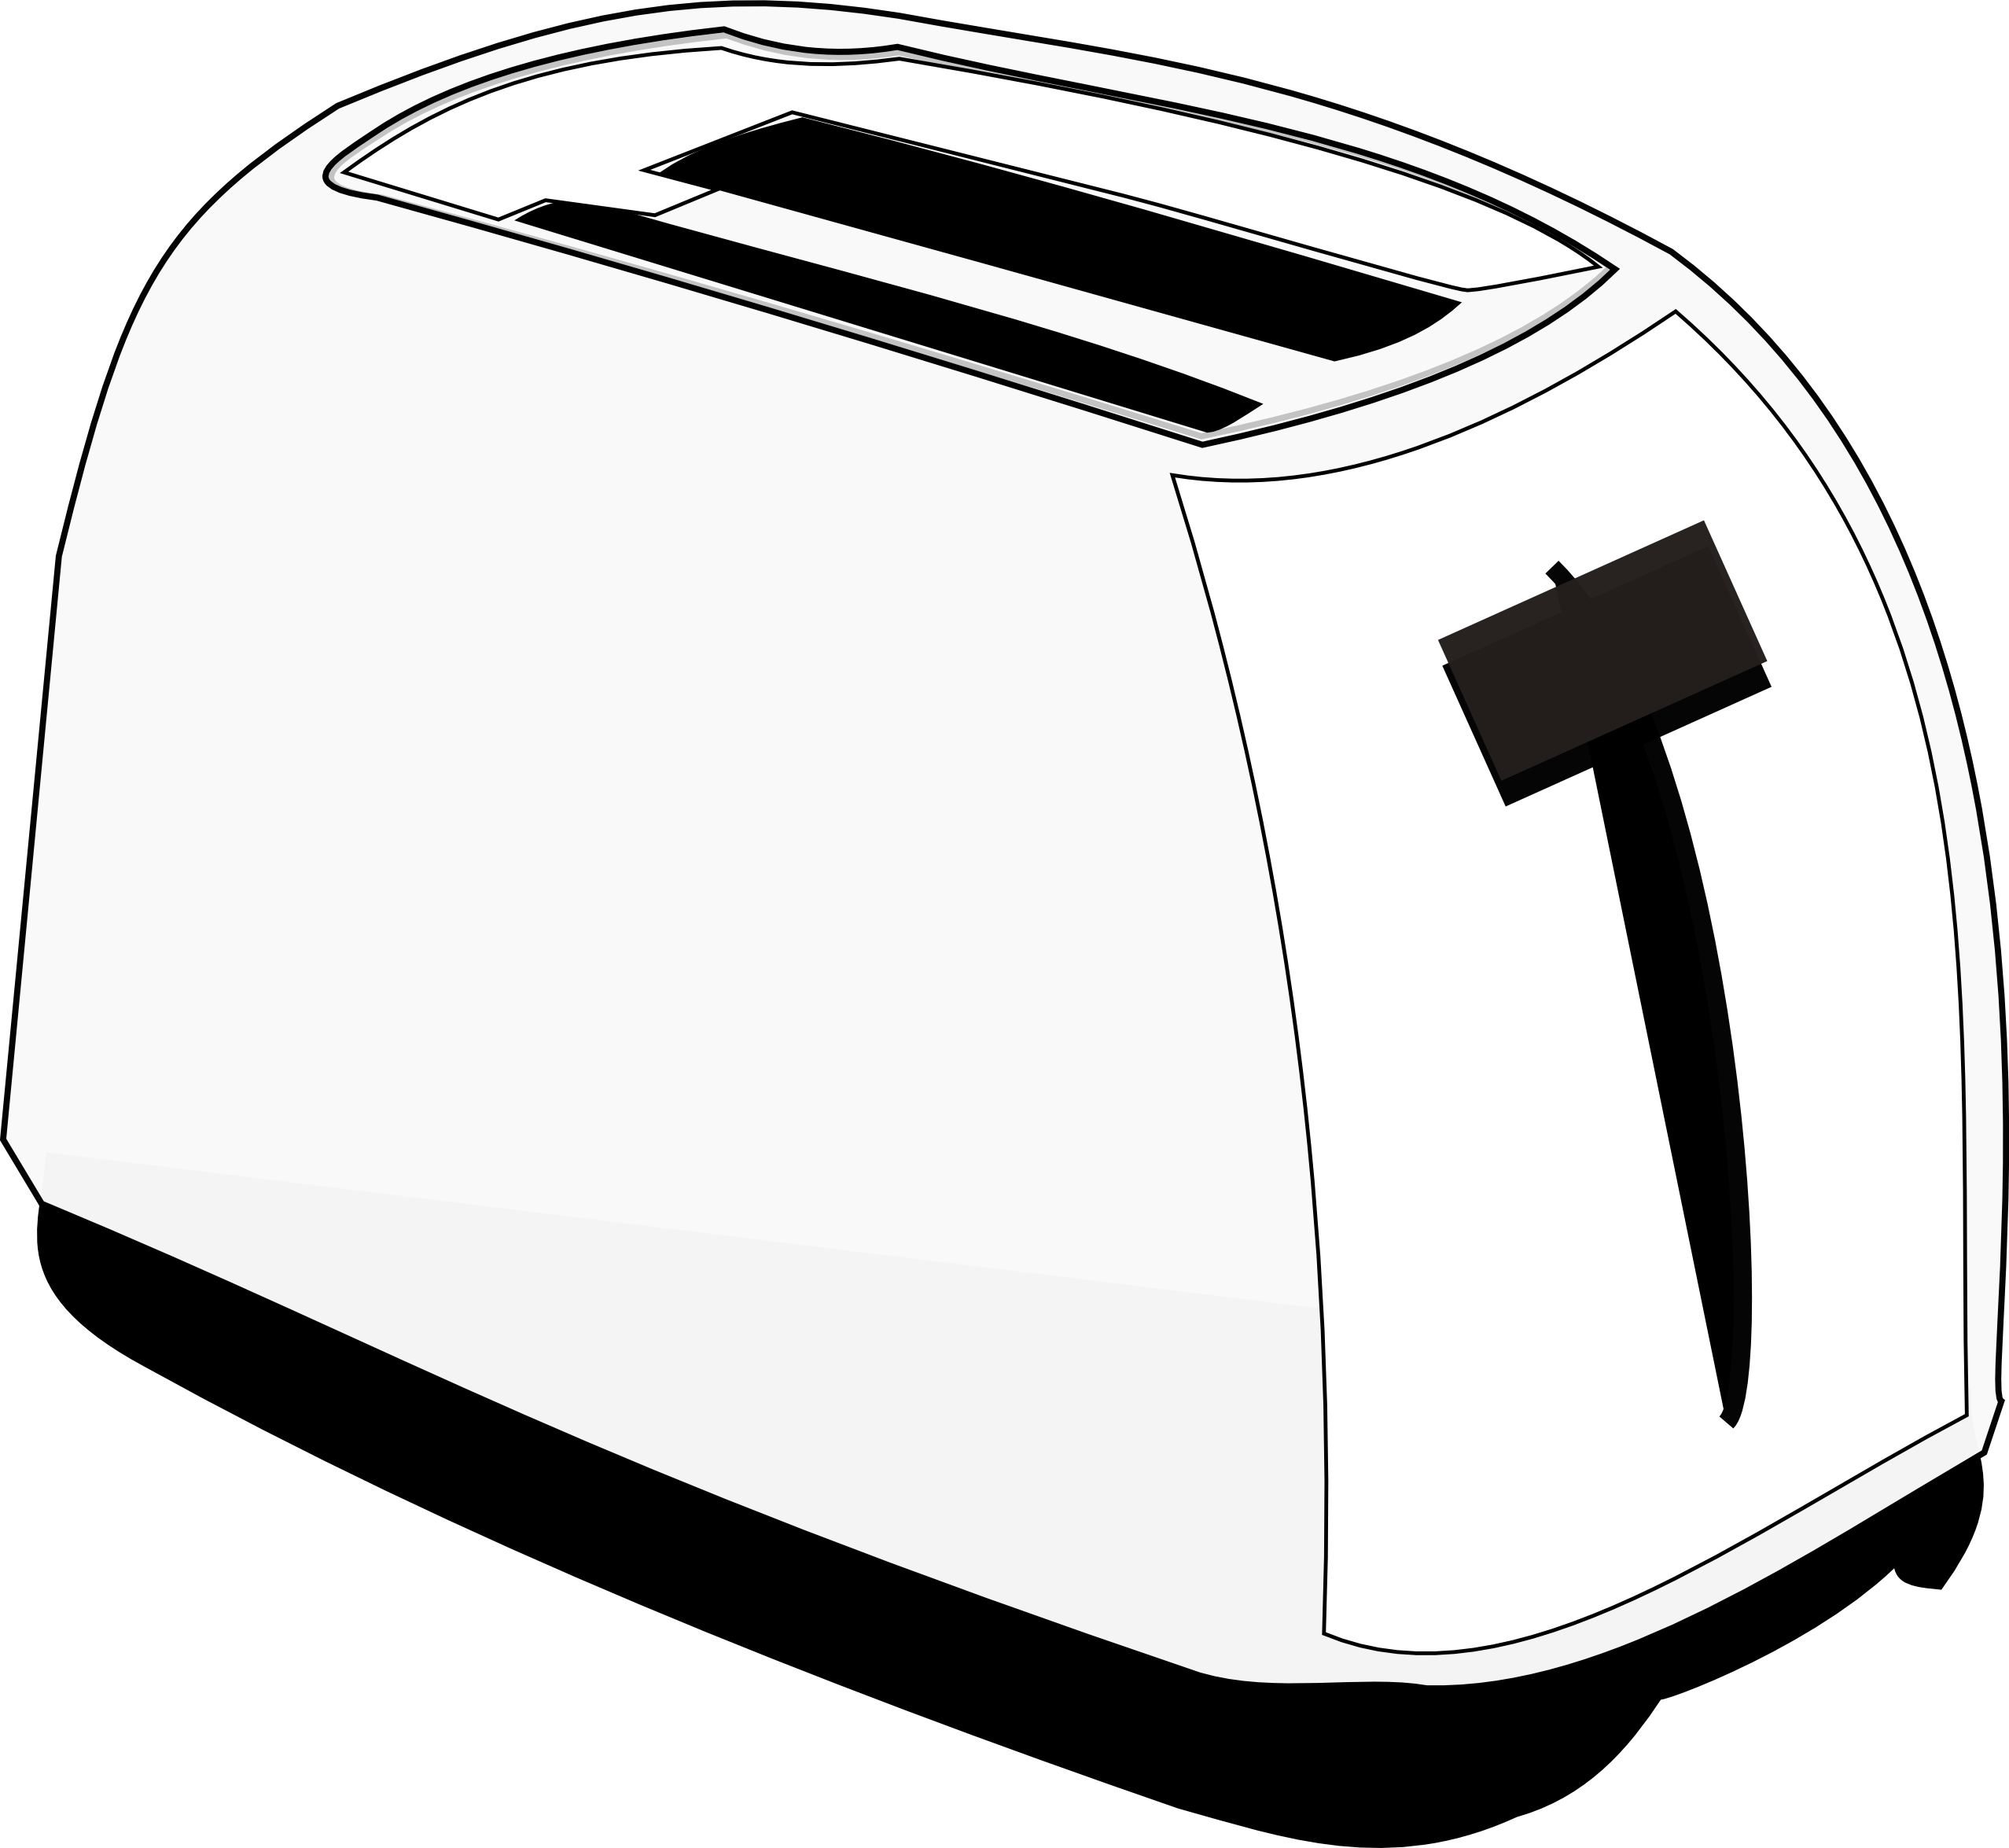 Toaster clipart small appliance. Panda free images uprisingclipart